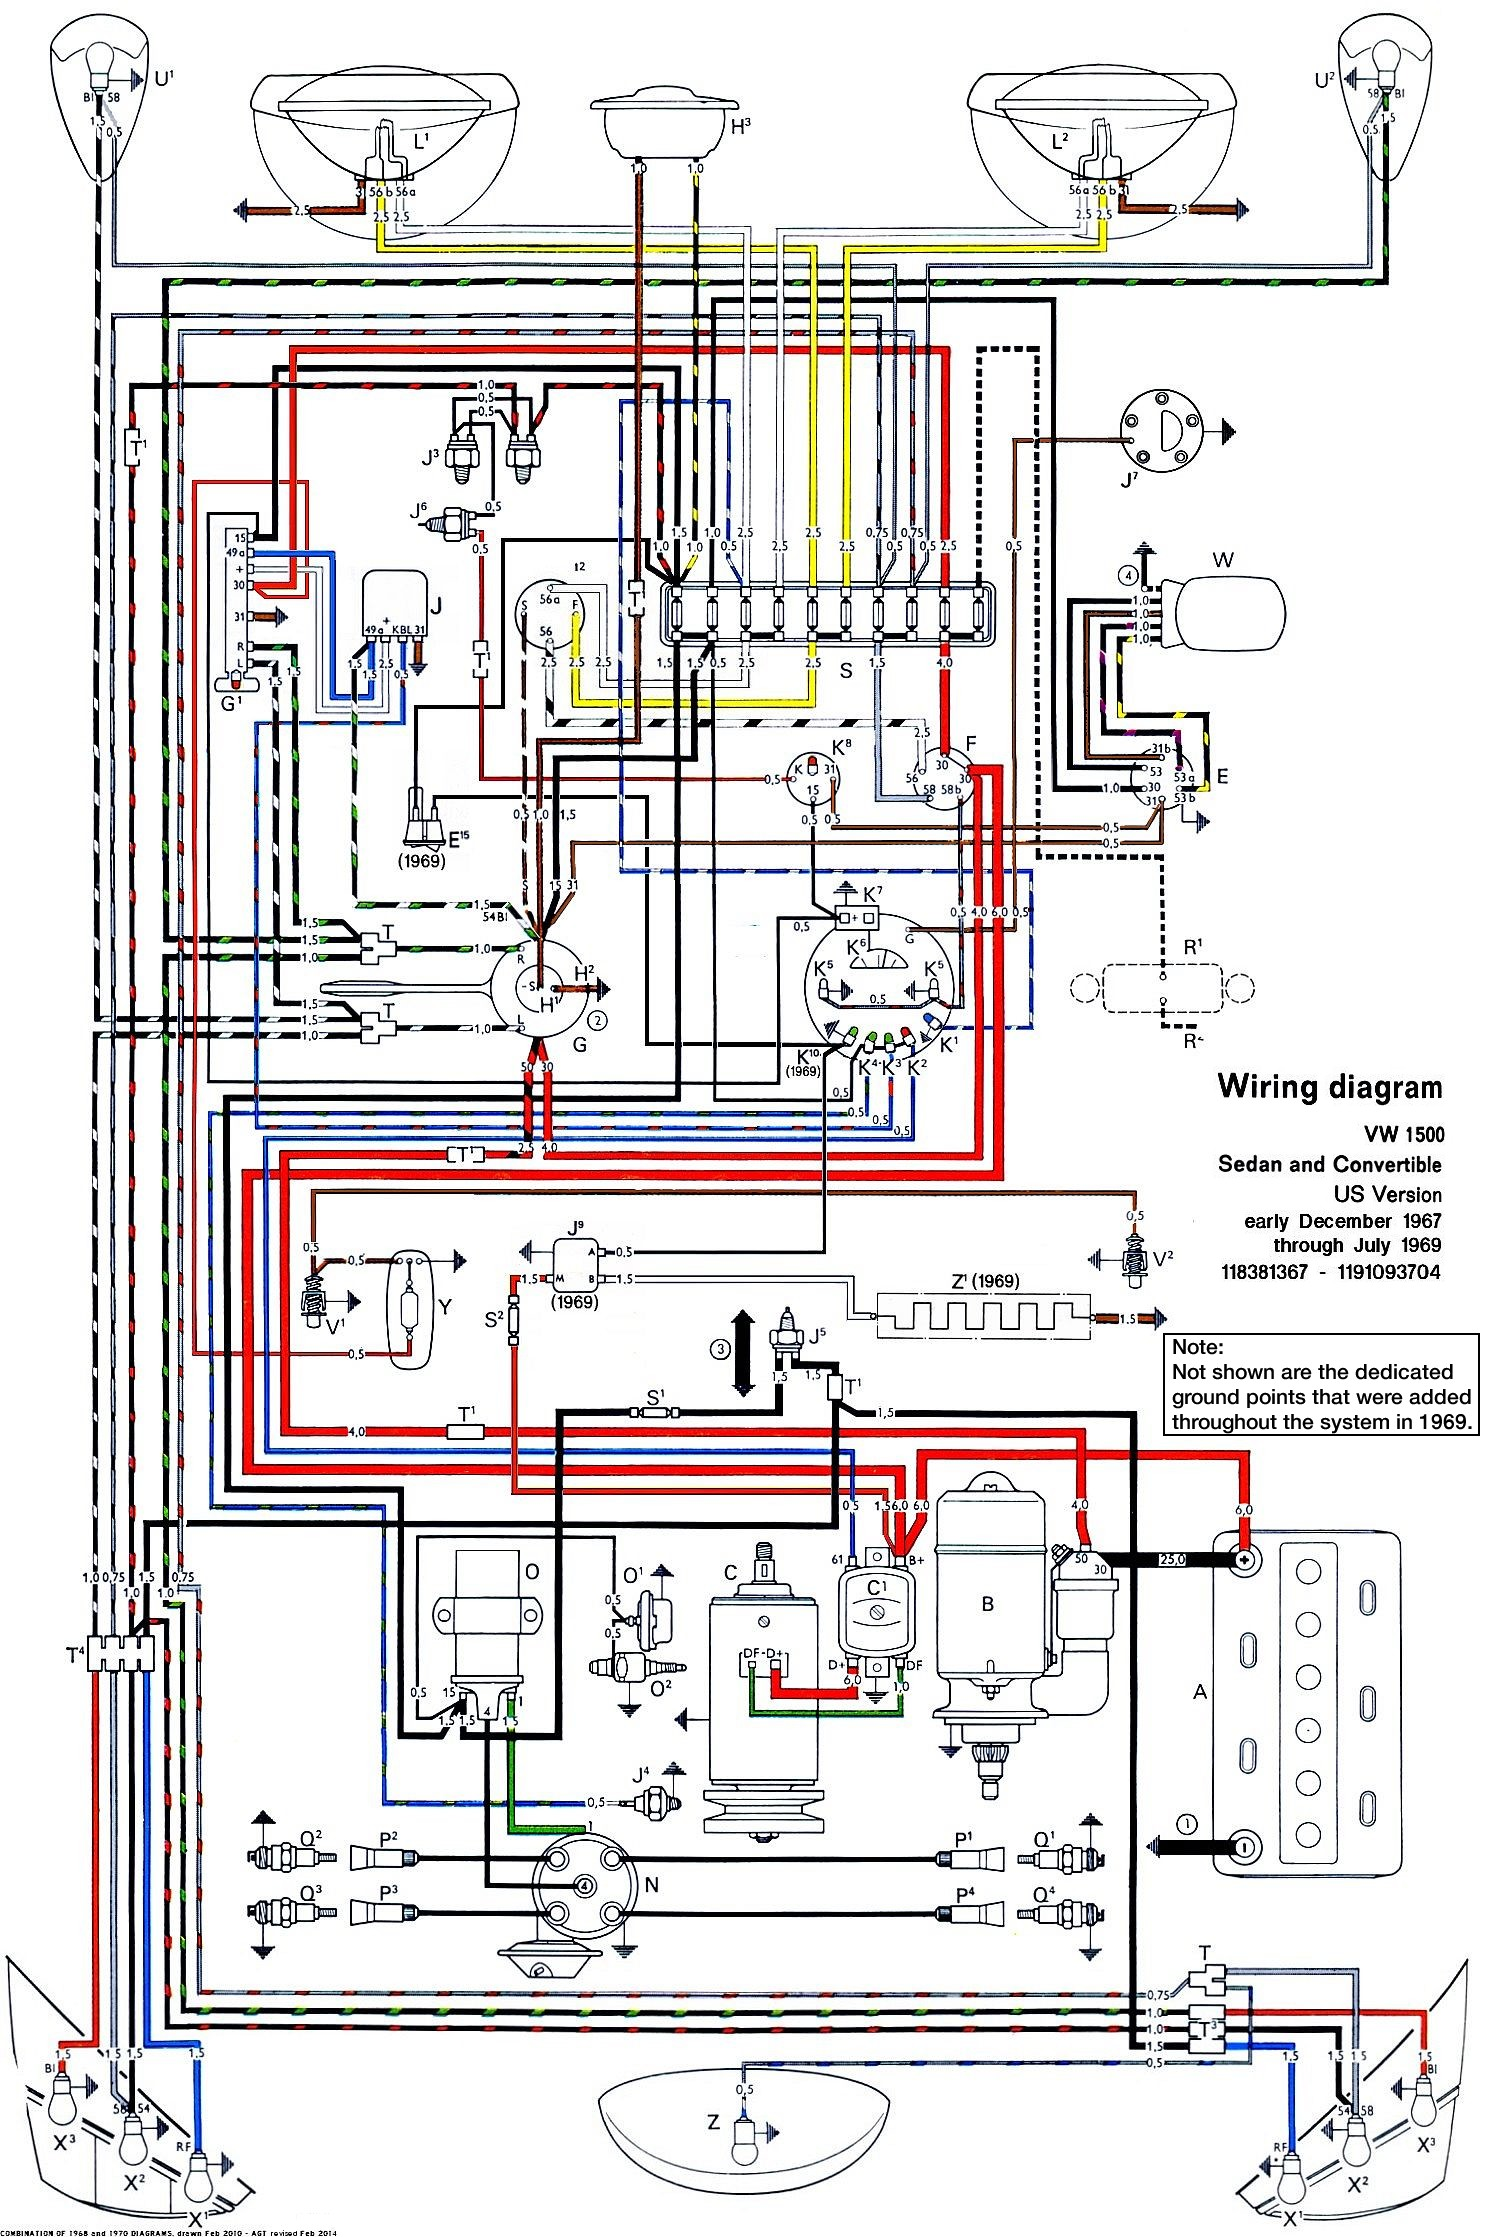 DIAGRAM] Wiring Diagram 68 Vw Bus FULL Version HD Quality Vw Bus -  ELECTRONICSTOR.FARMACIATRECOLOMBINE.ITelectronicstor.farmaciatrecolombine.it